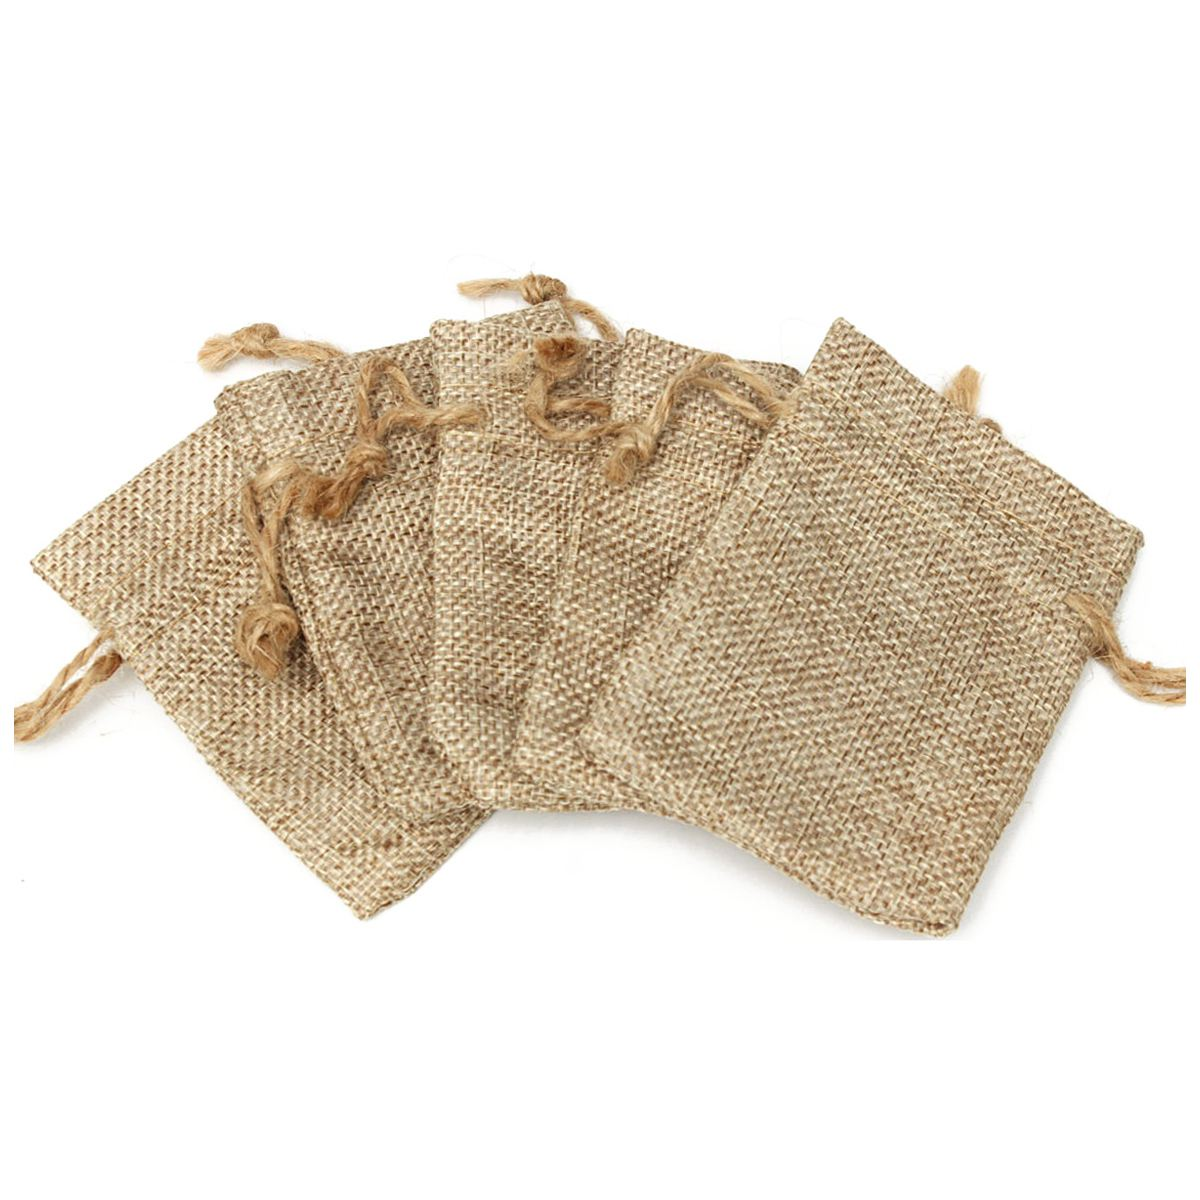 20PCS Linen Jewellery Drawstring Pouch Ring Beads Mini Candy Bags Burlap Gift